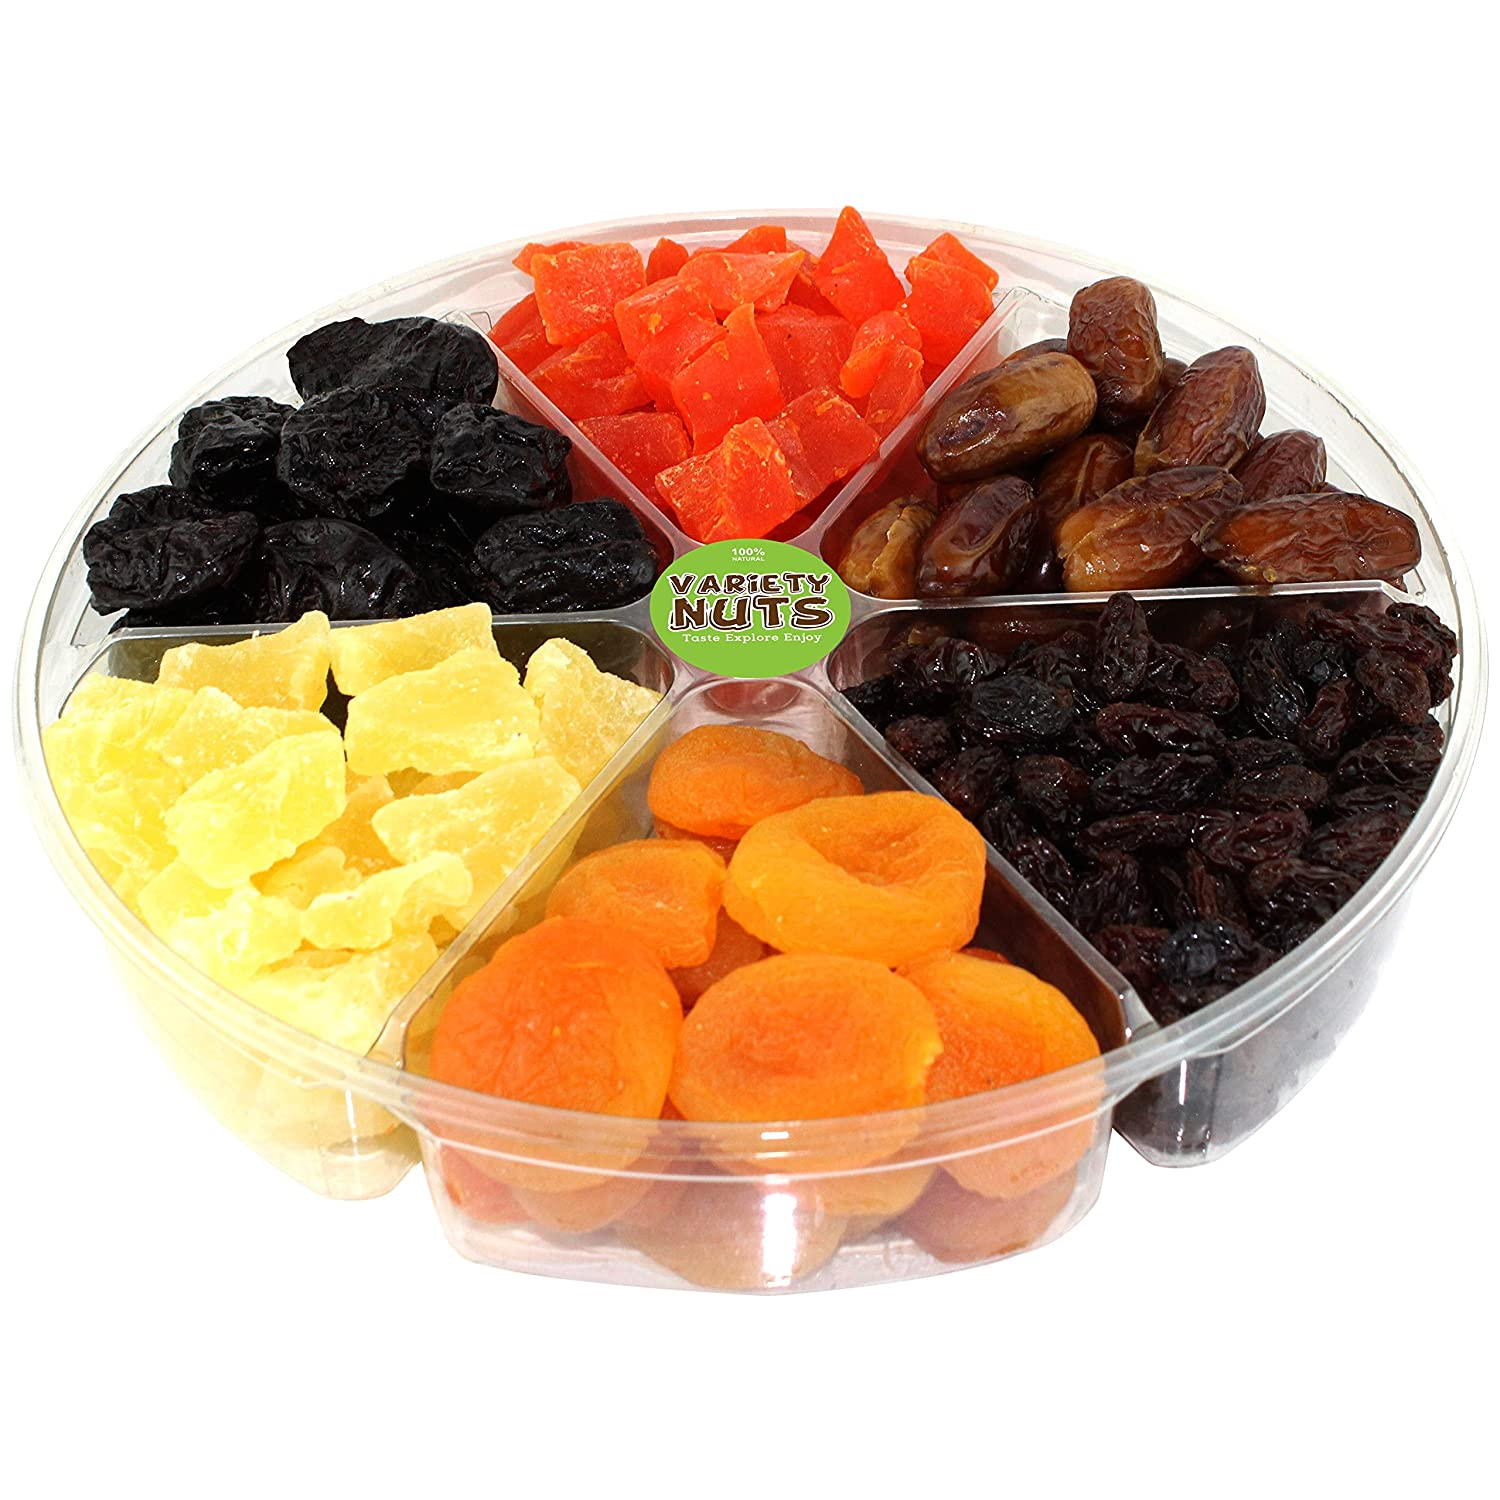 Variety nuts gourmet dried fruits gift basket large amazon variety nuts gourmet dried fruits gift basket large amazon grocery gourmet food negle Gallery